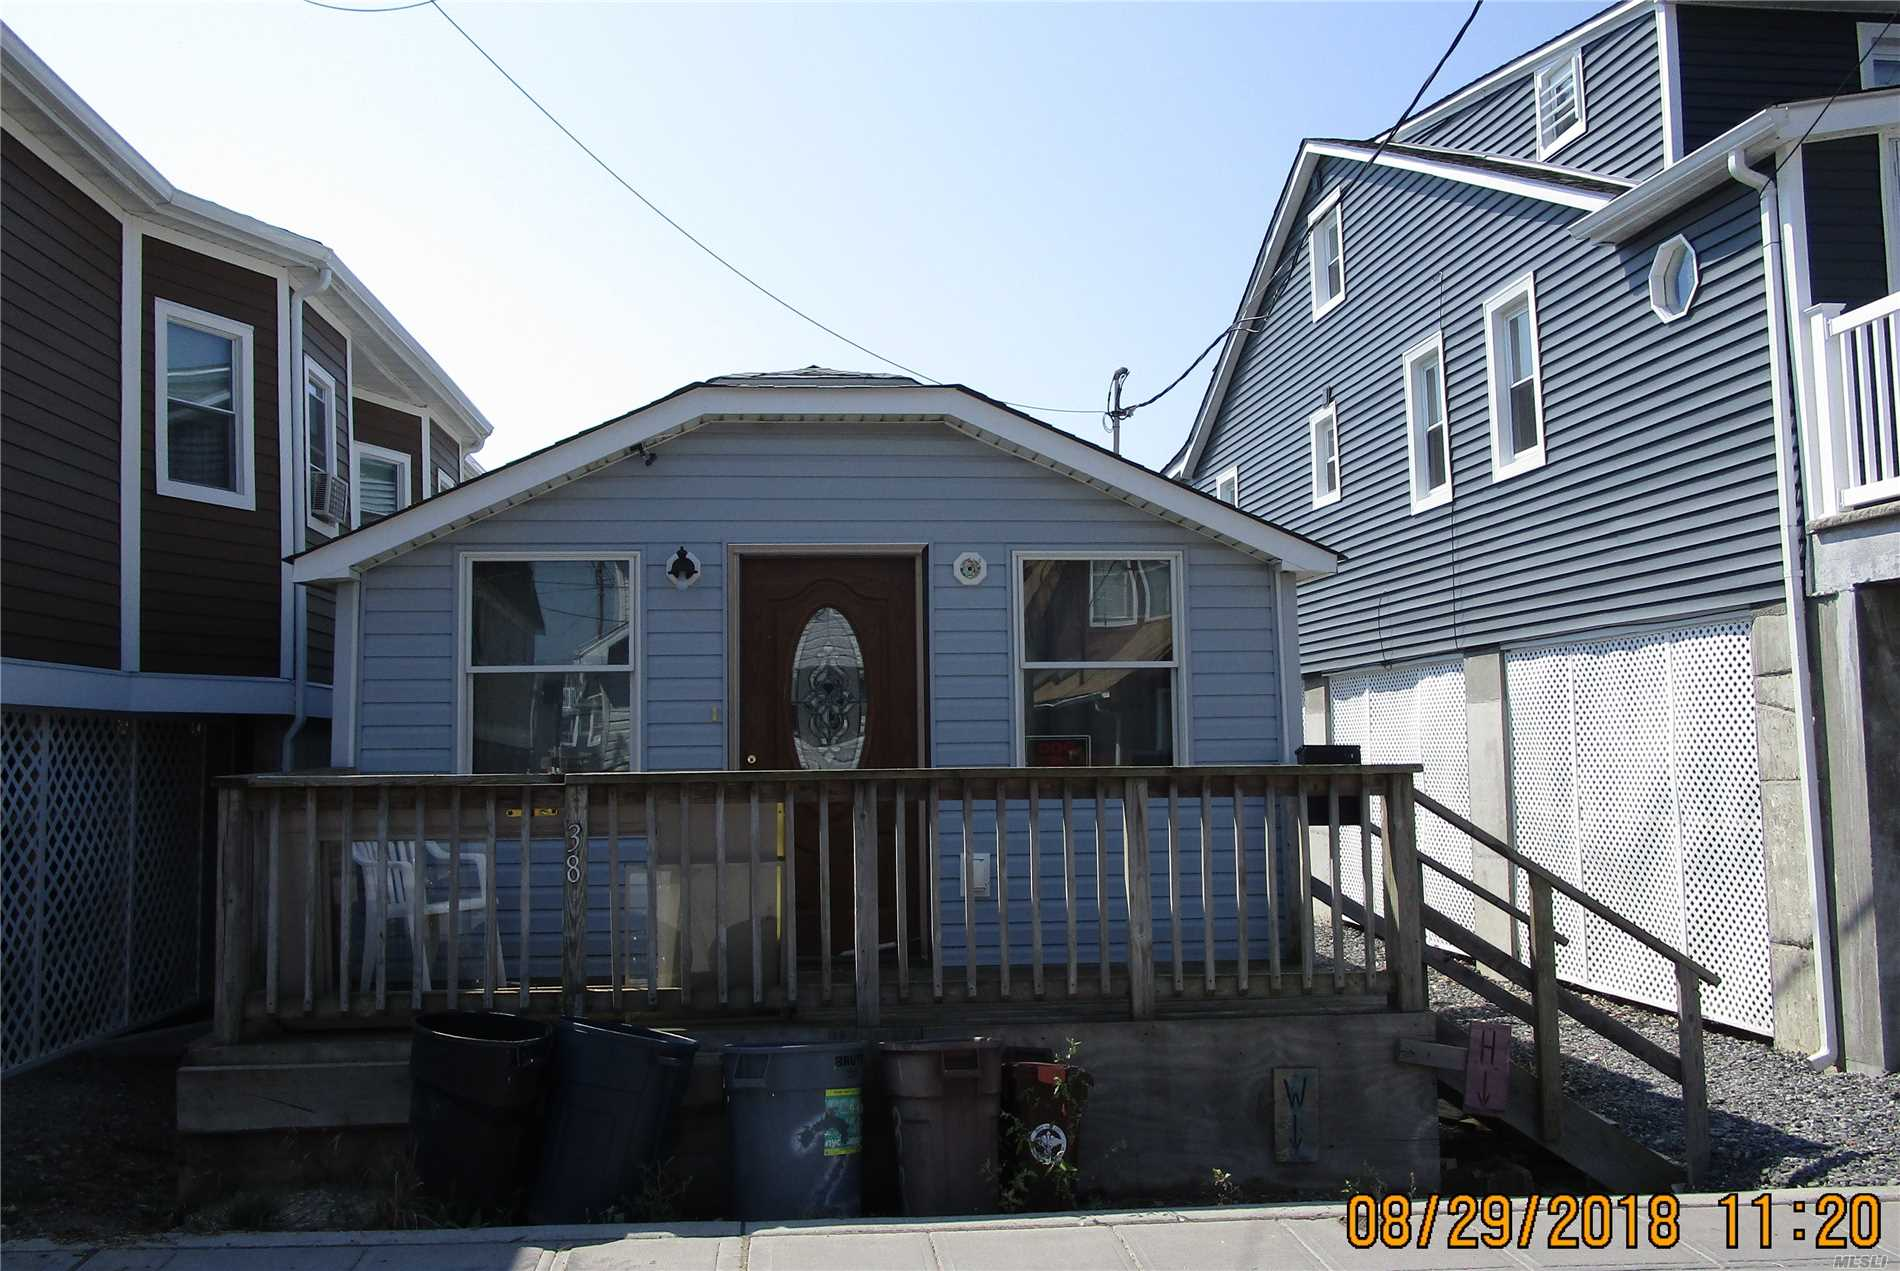 38 W 12th Rd Broad Channel, NY 11693